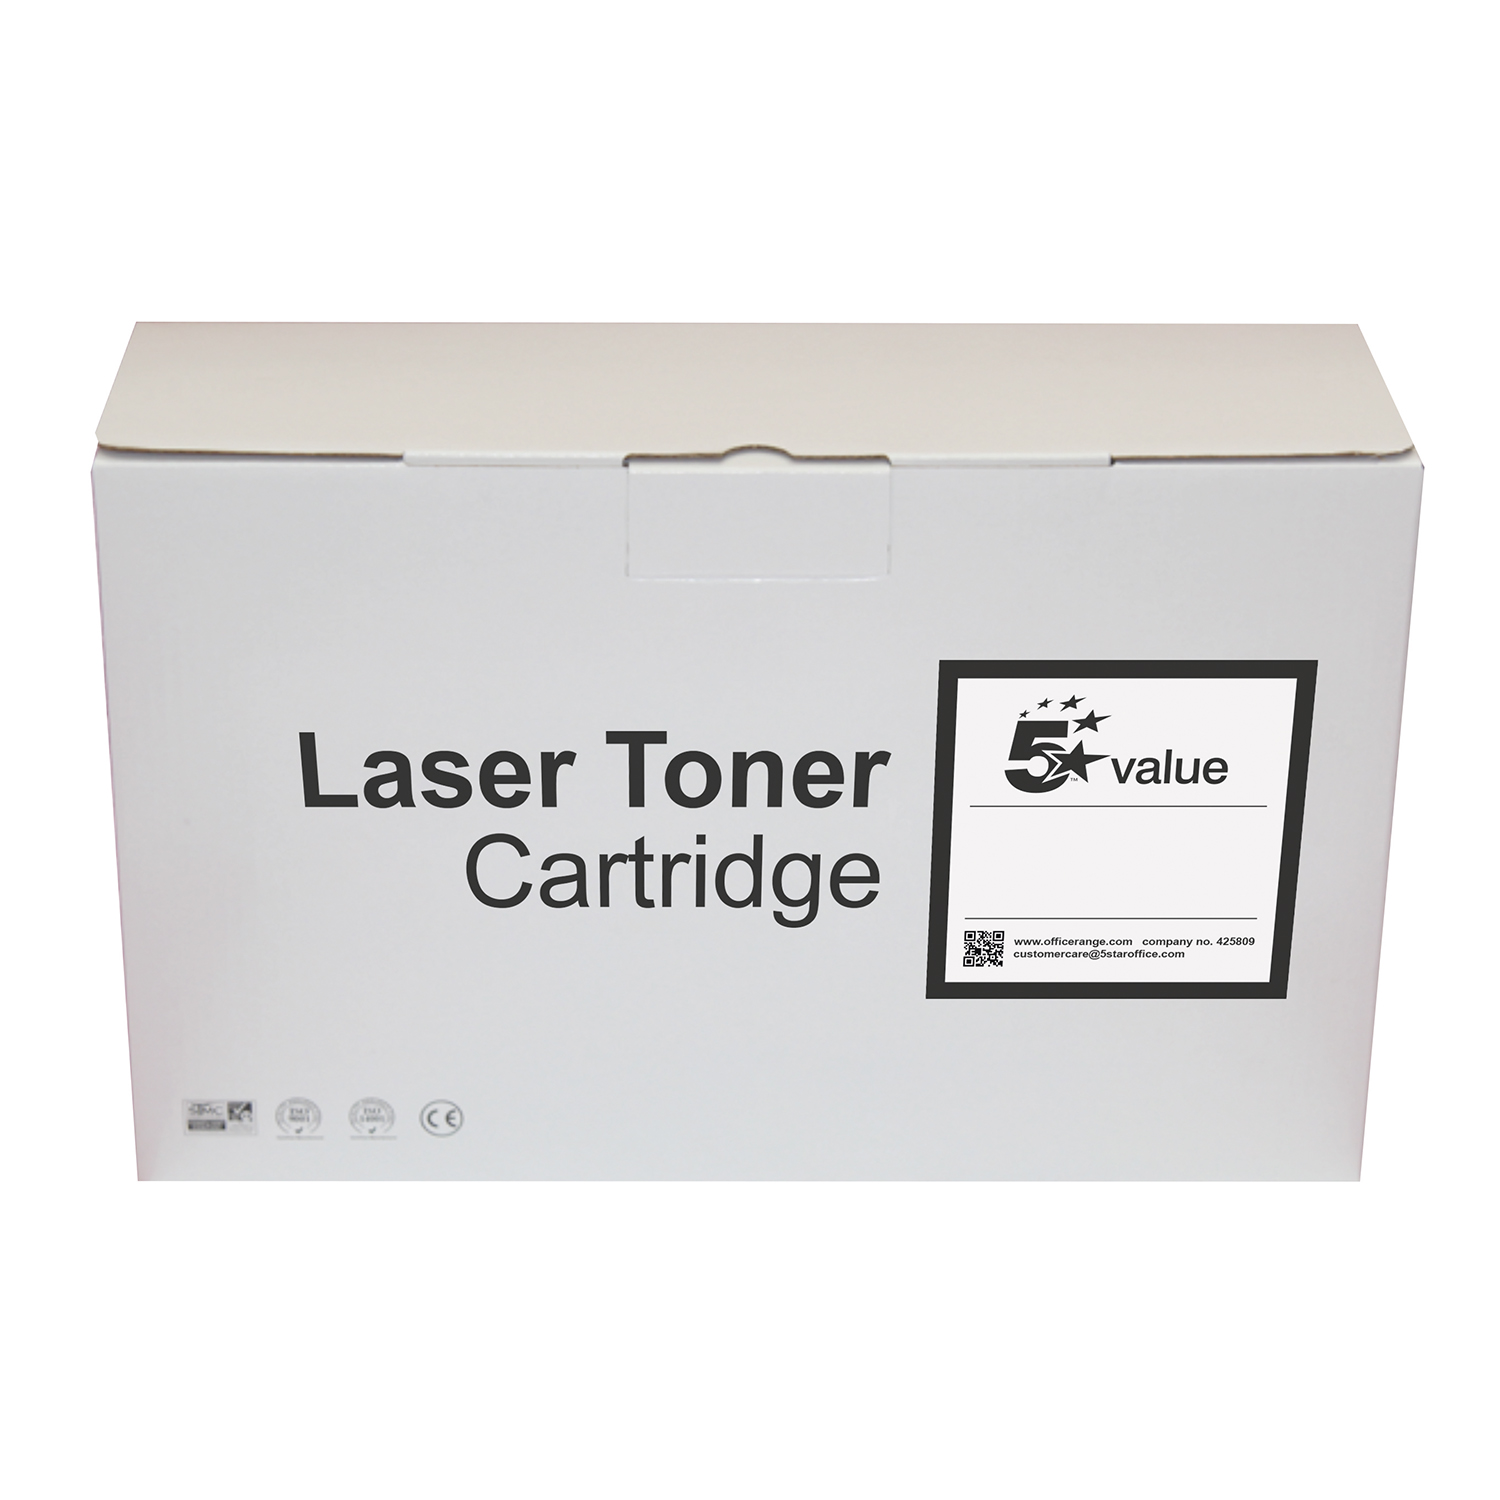 5 Star Value HP 312A Toner Cartridge Magenta CF383A